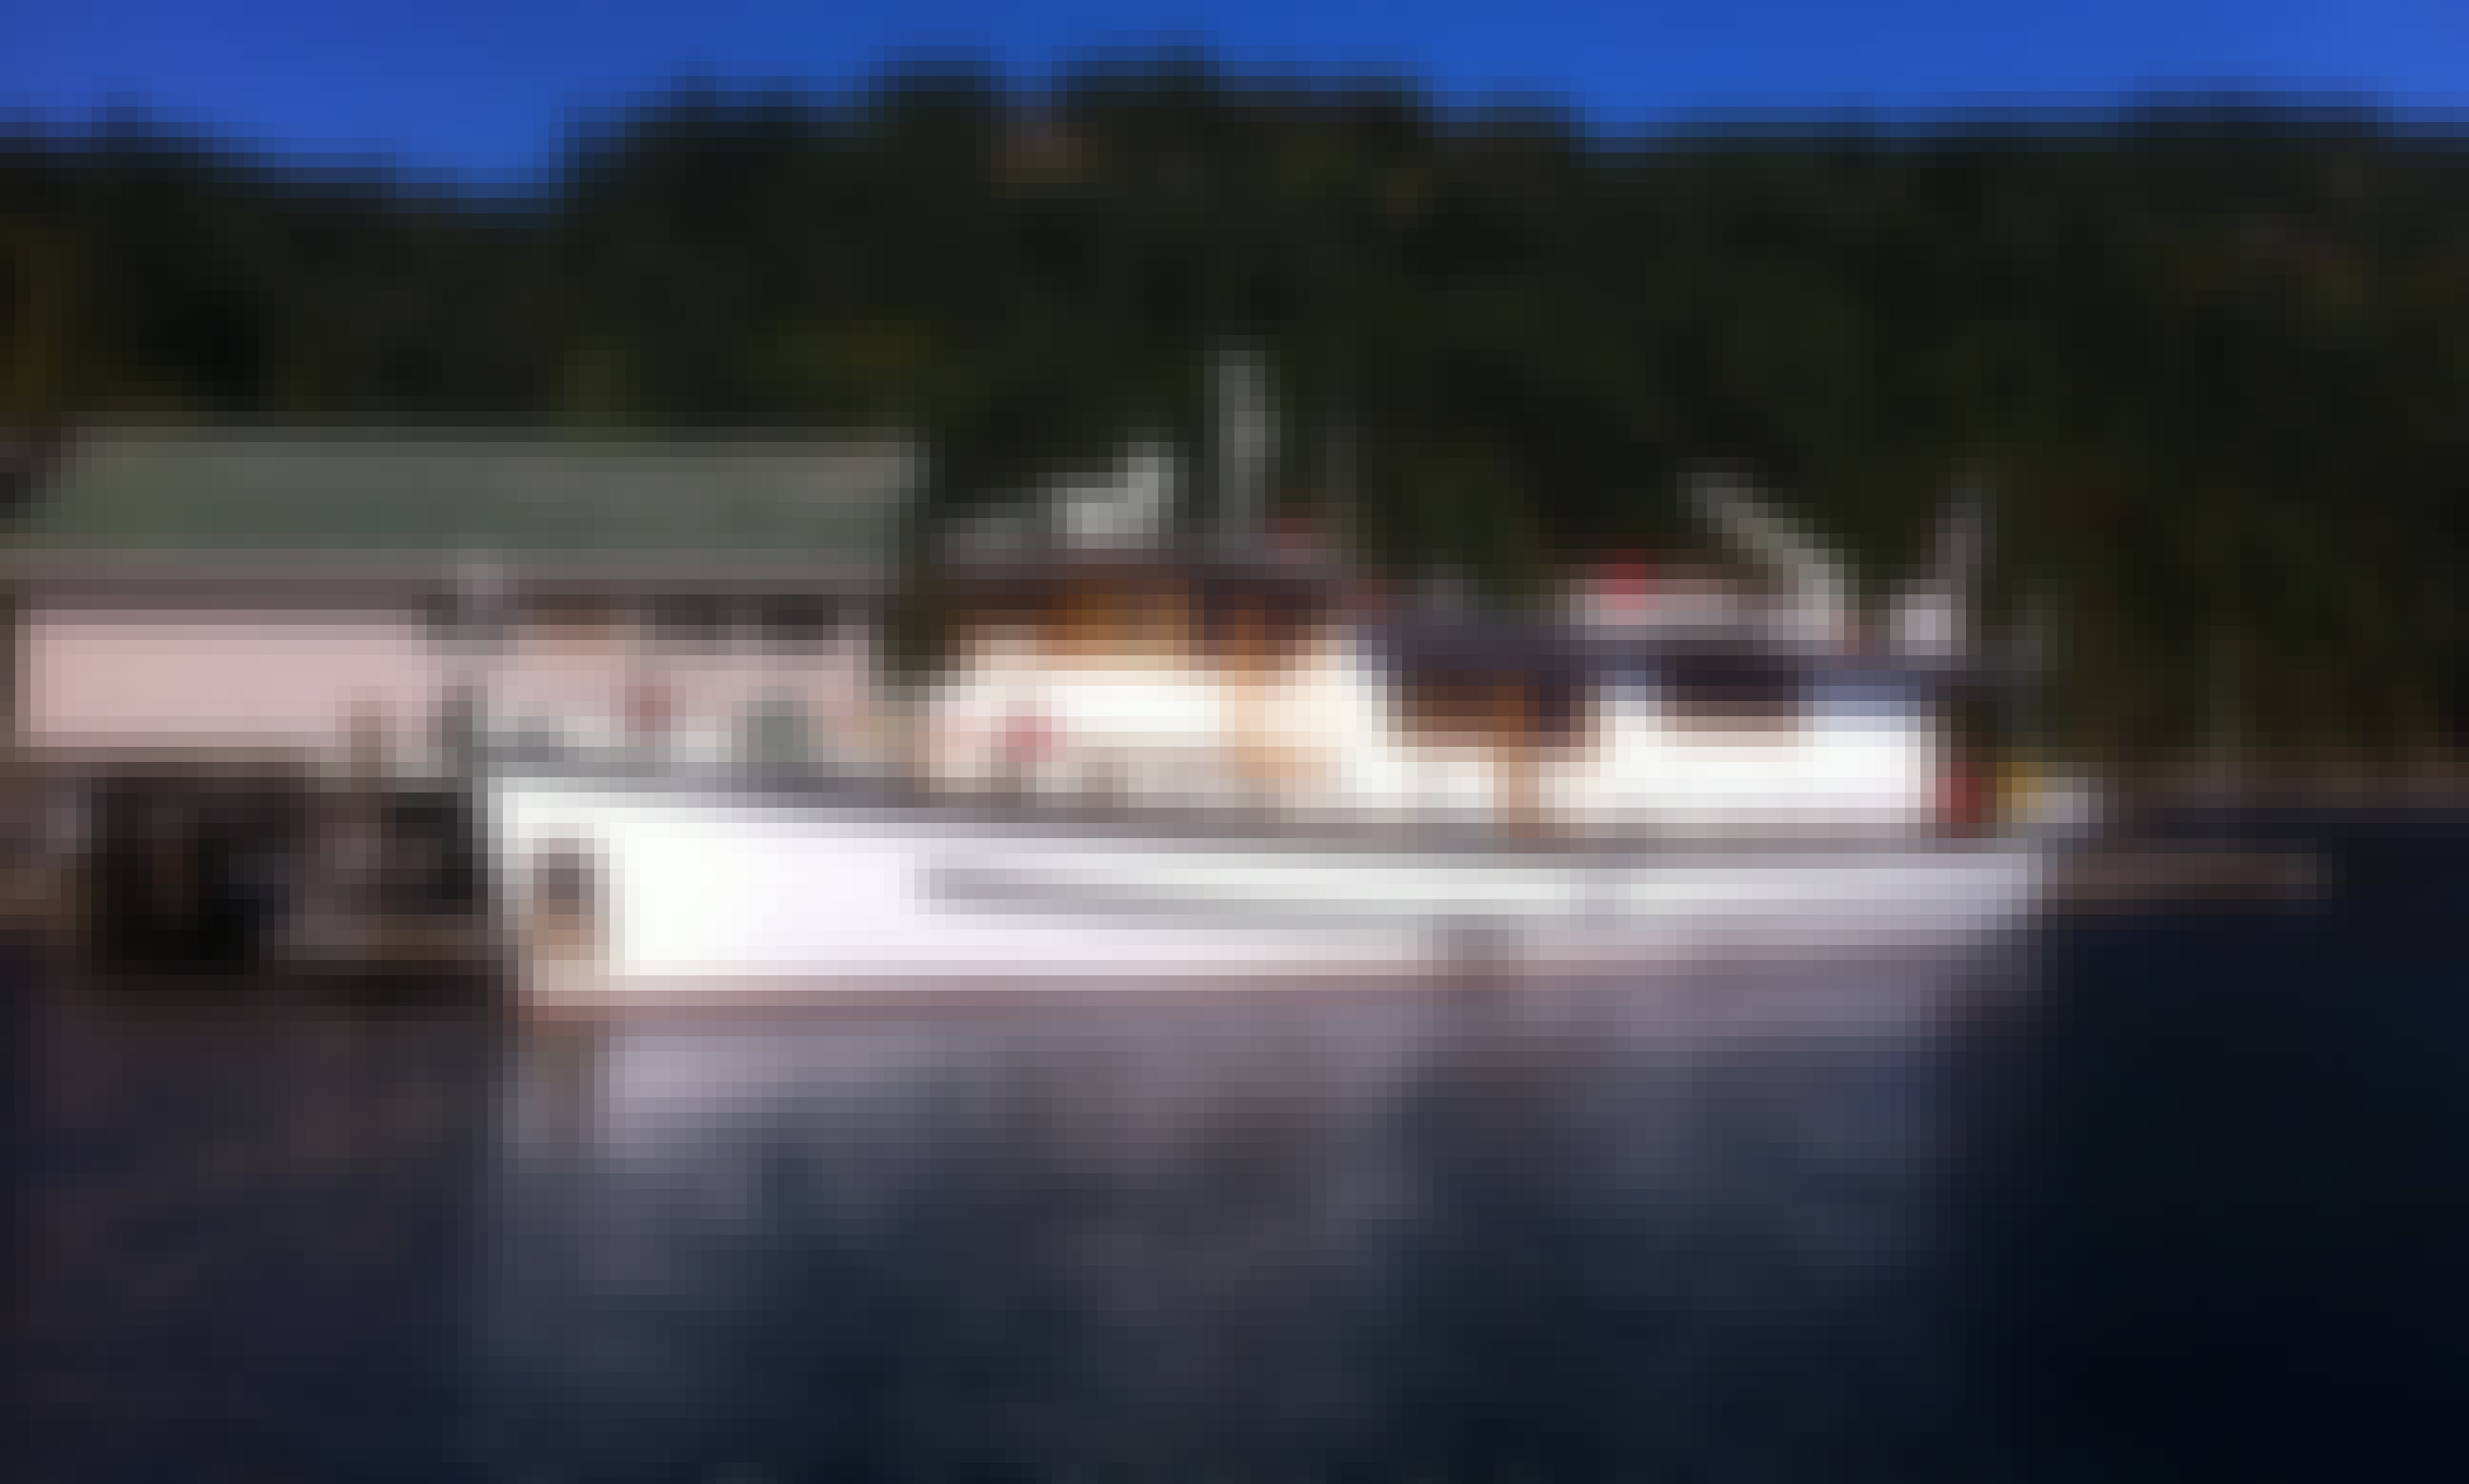 Motor Yacht rental in Tacoma with captain